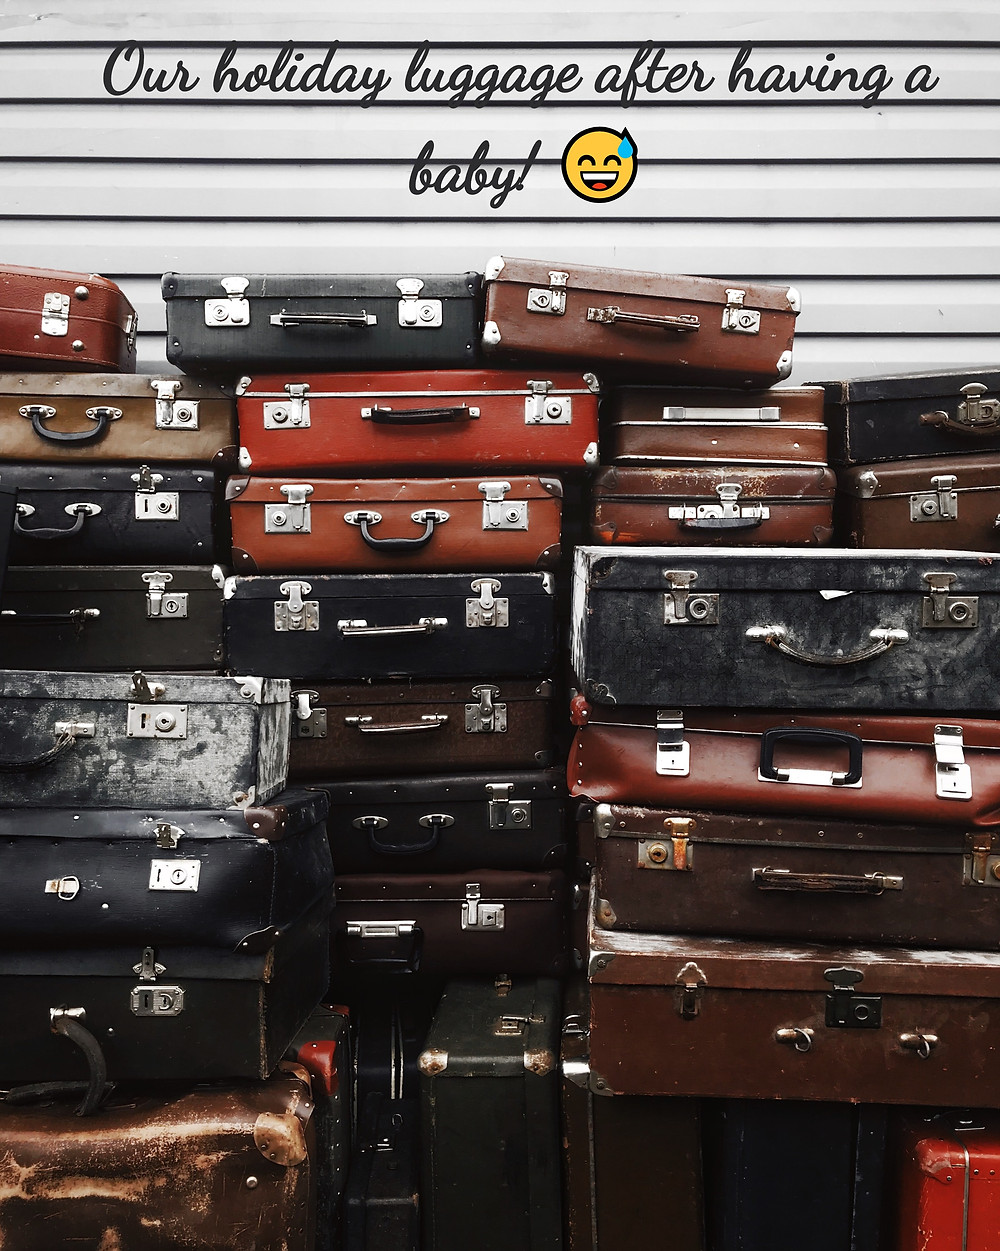 Holiday luggage after having a baby